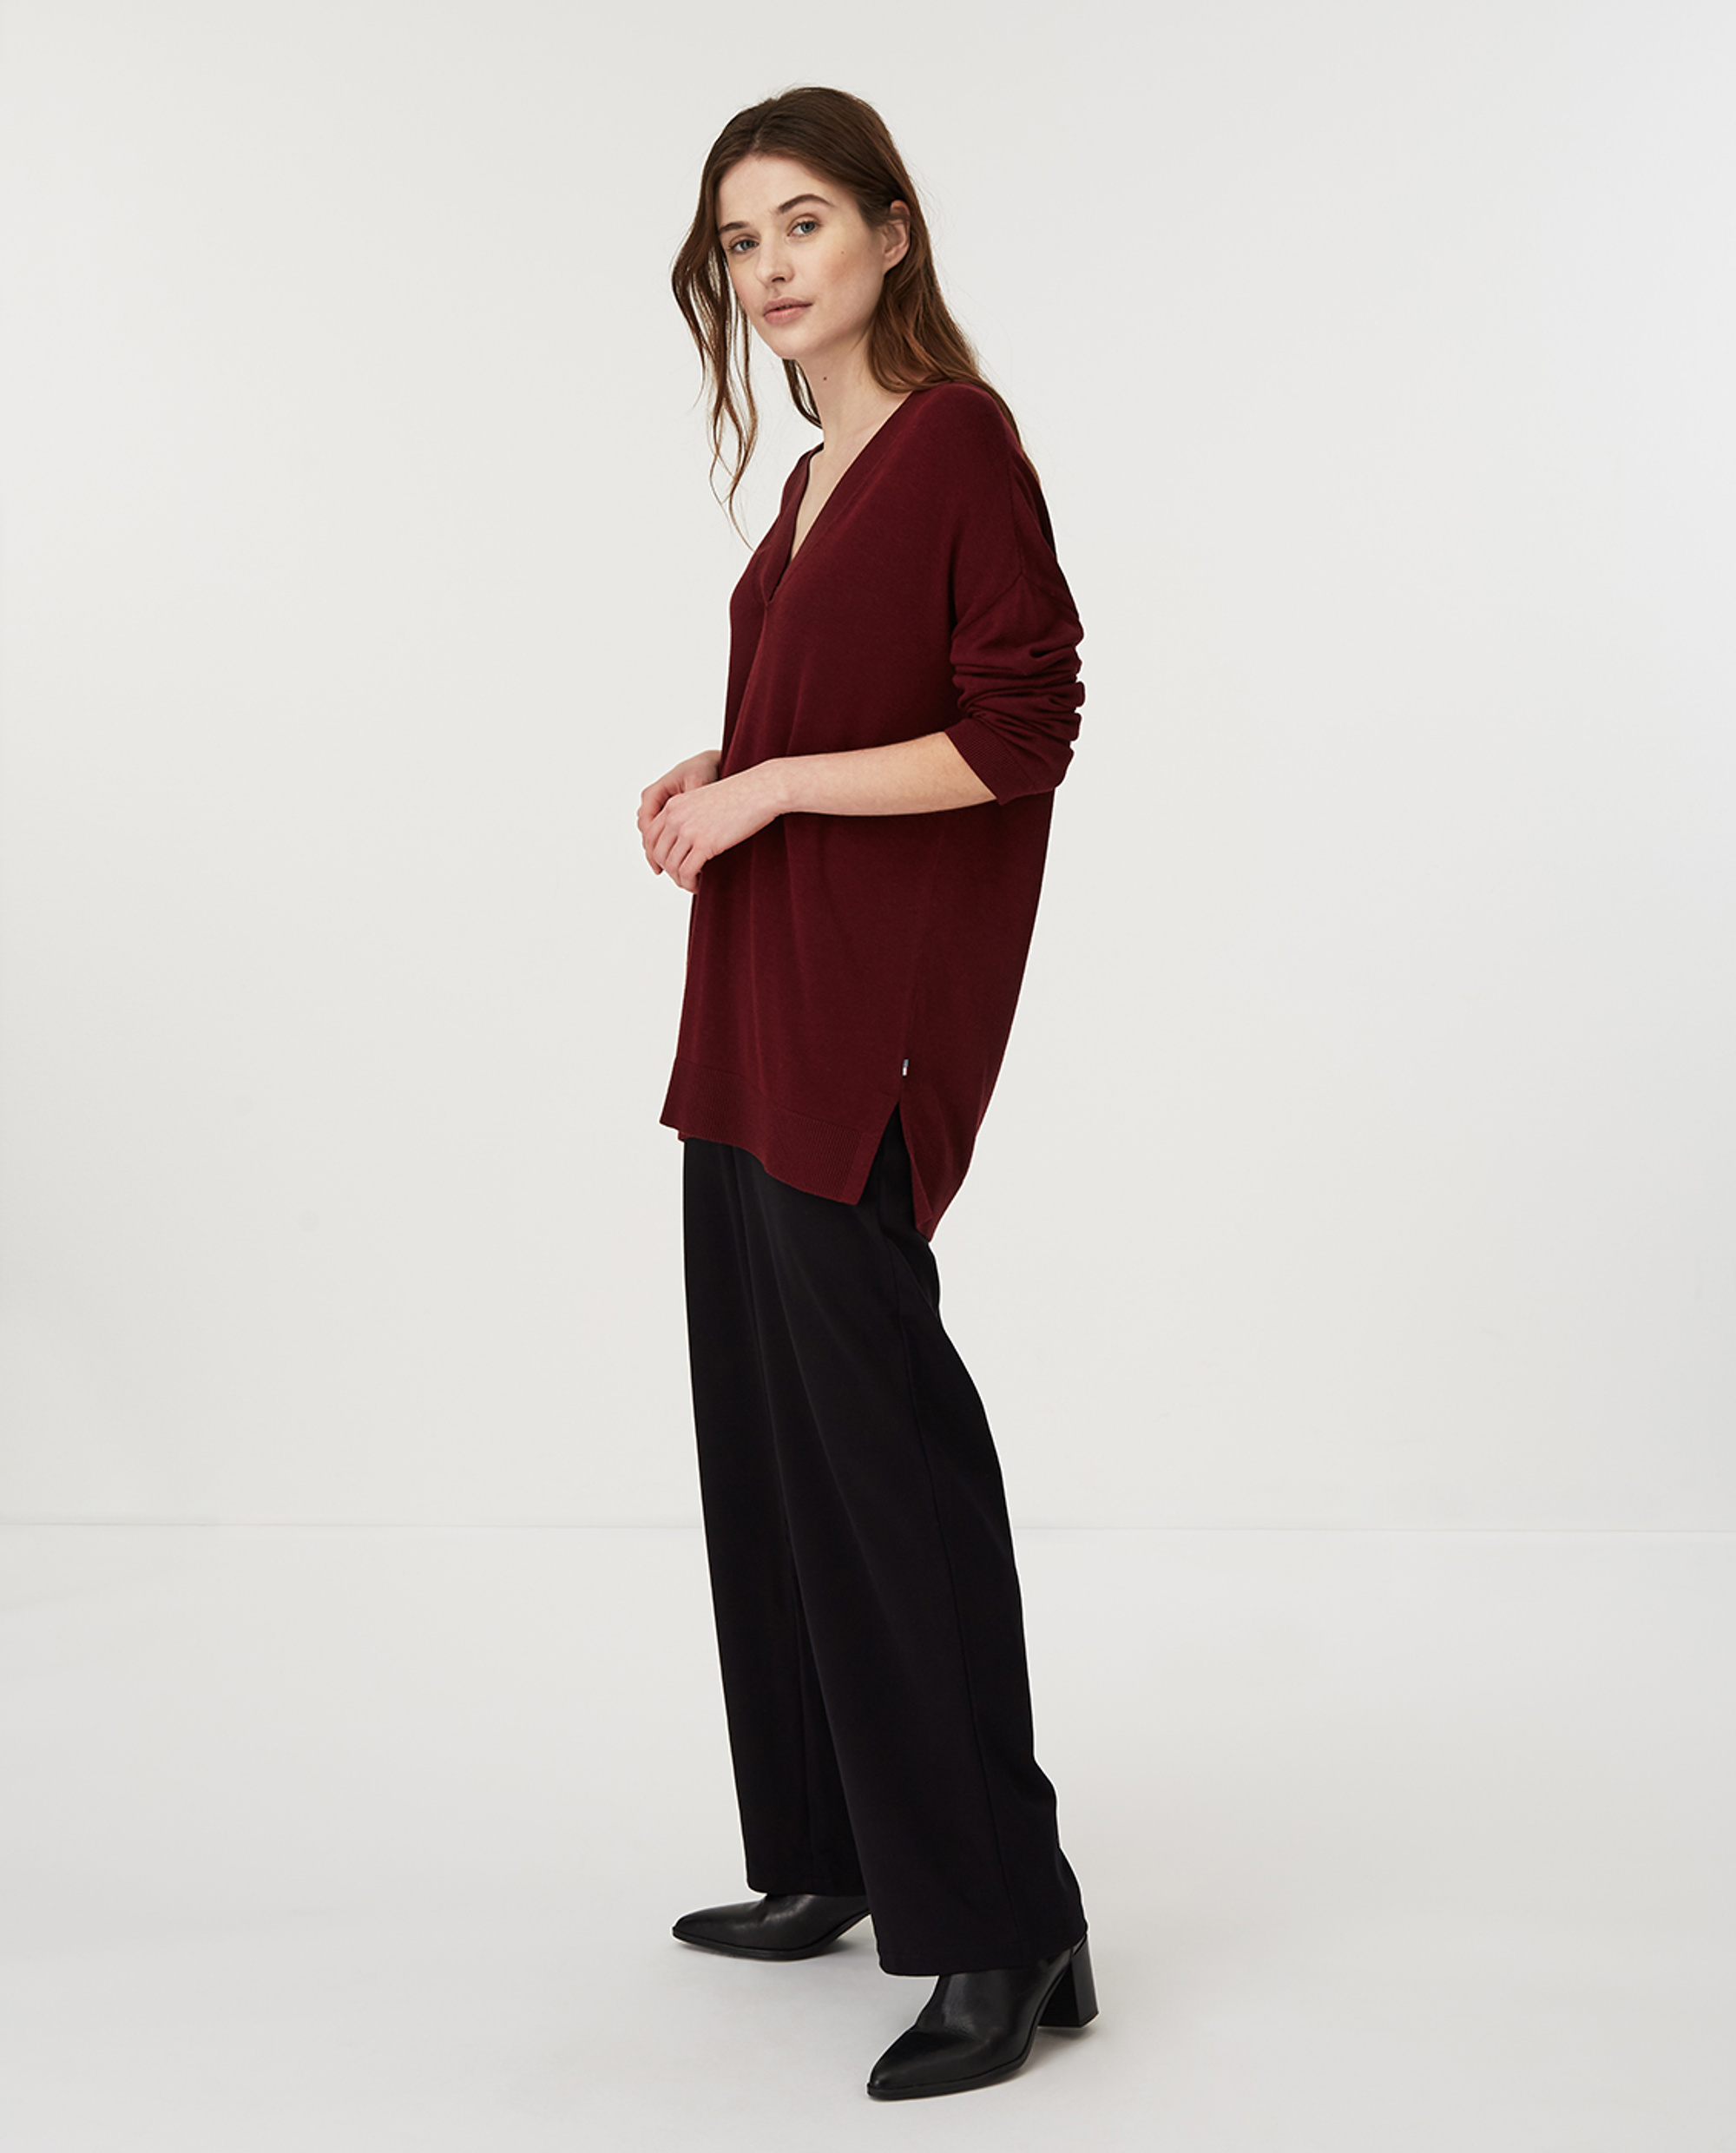 Ana Cotton/Bamboo V-neck Sweater, Dark Red